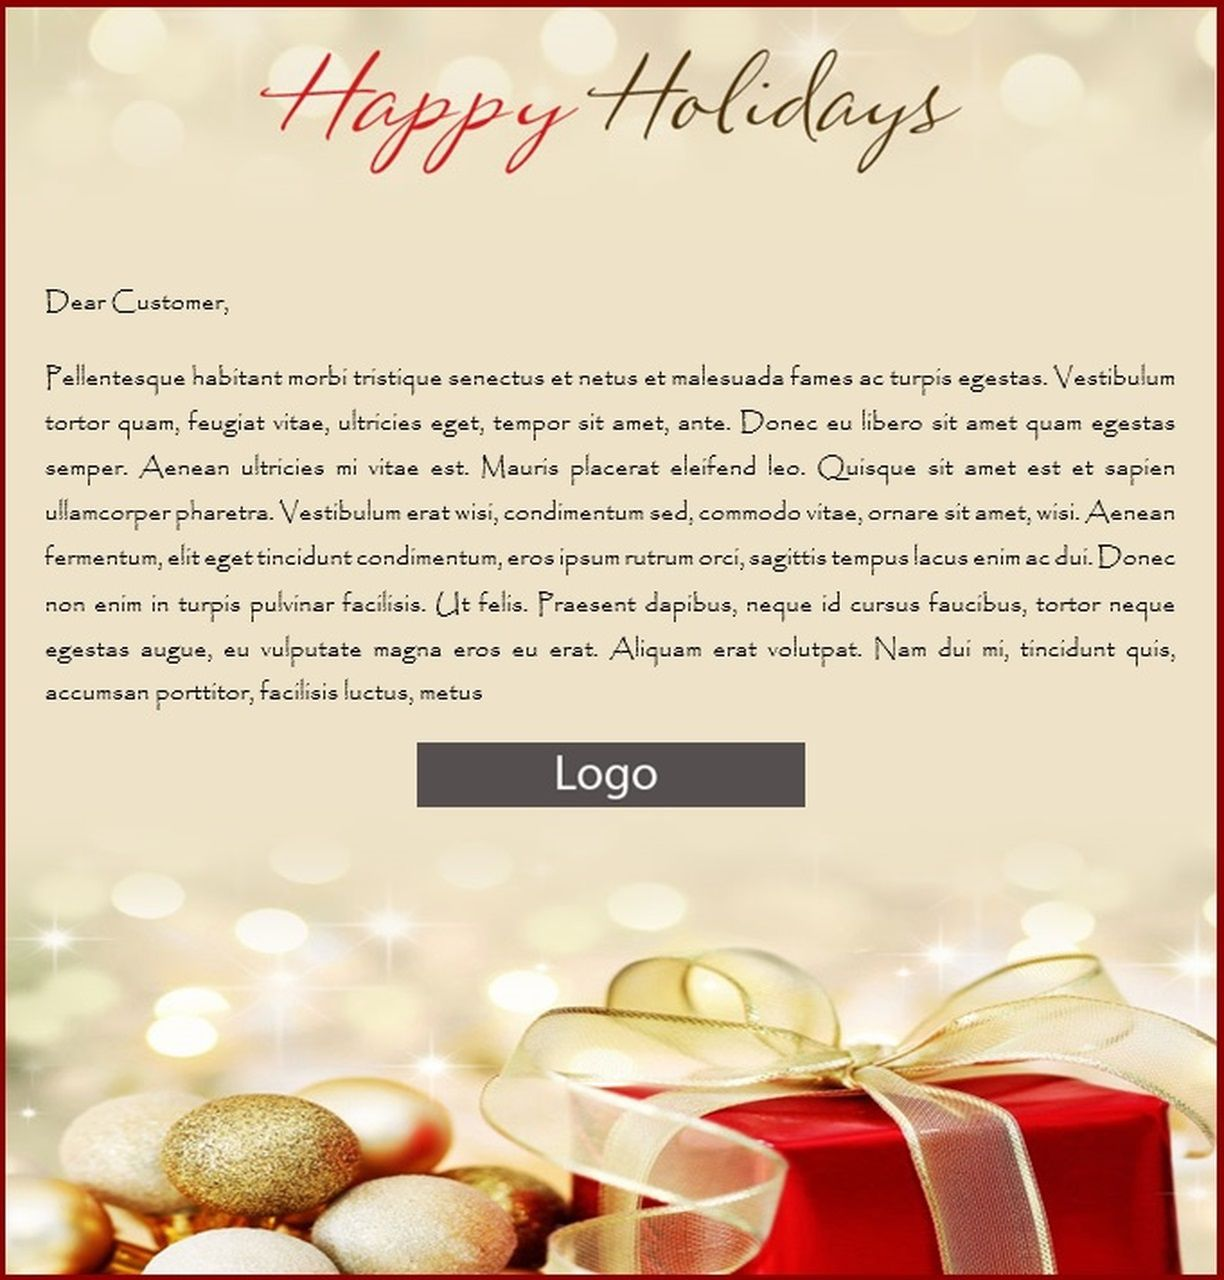 000 Simple Holiday E Mail Template Inspiration  Email Outlook Christma For MessageFull